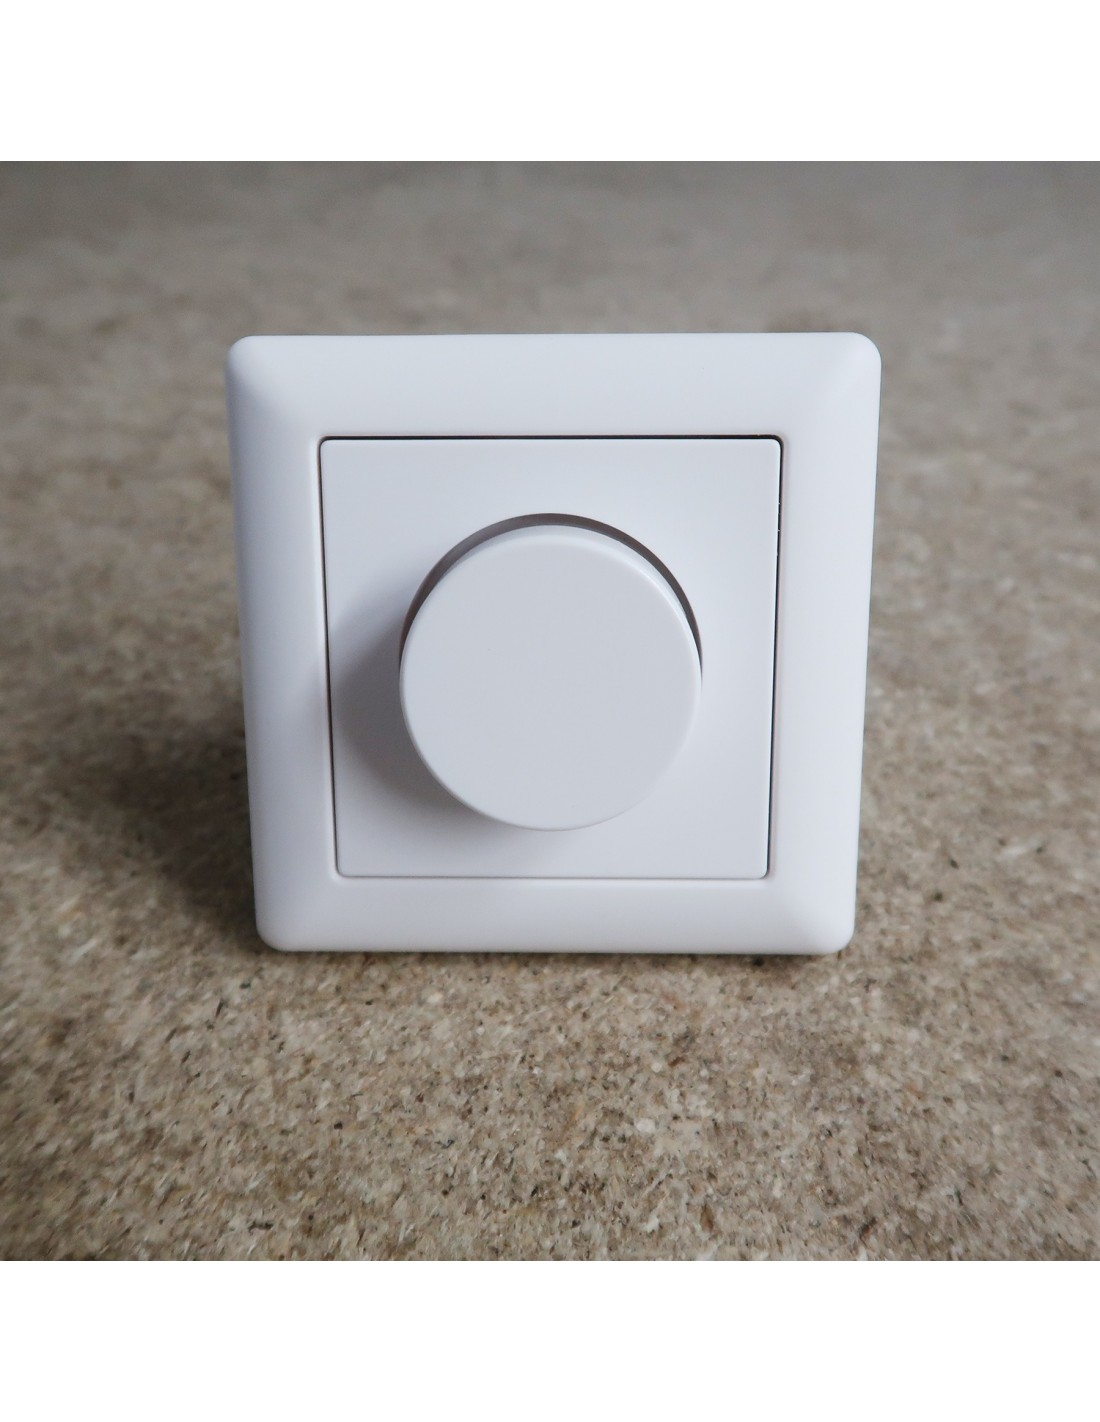 0 10v Wall Dimmer Switch